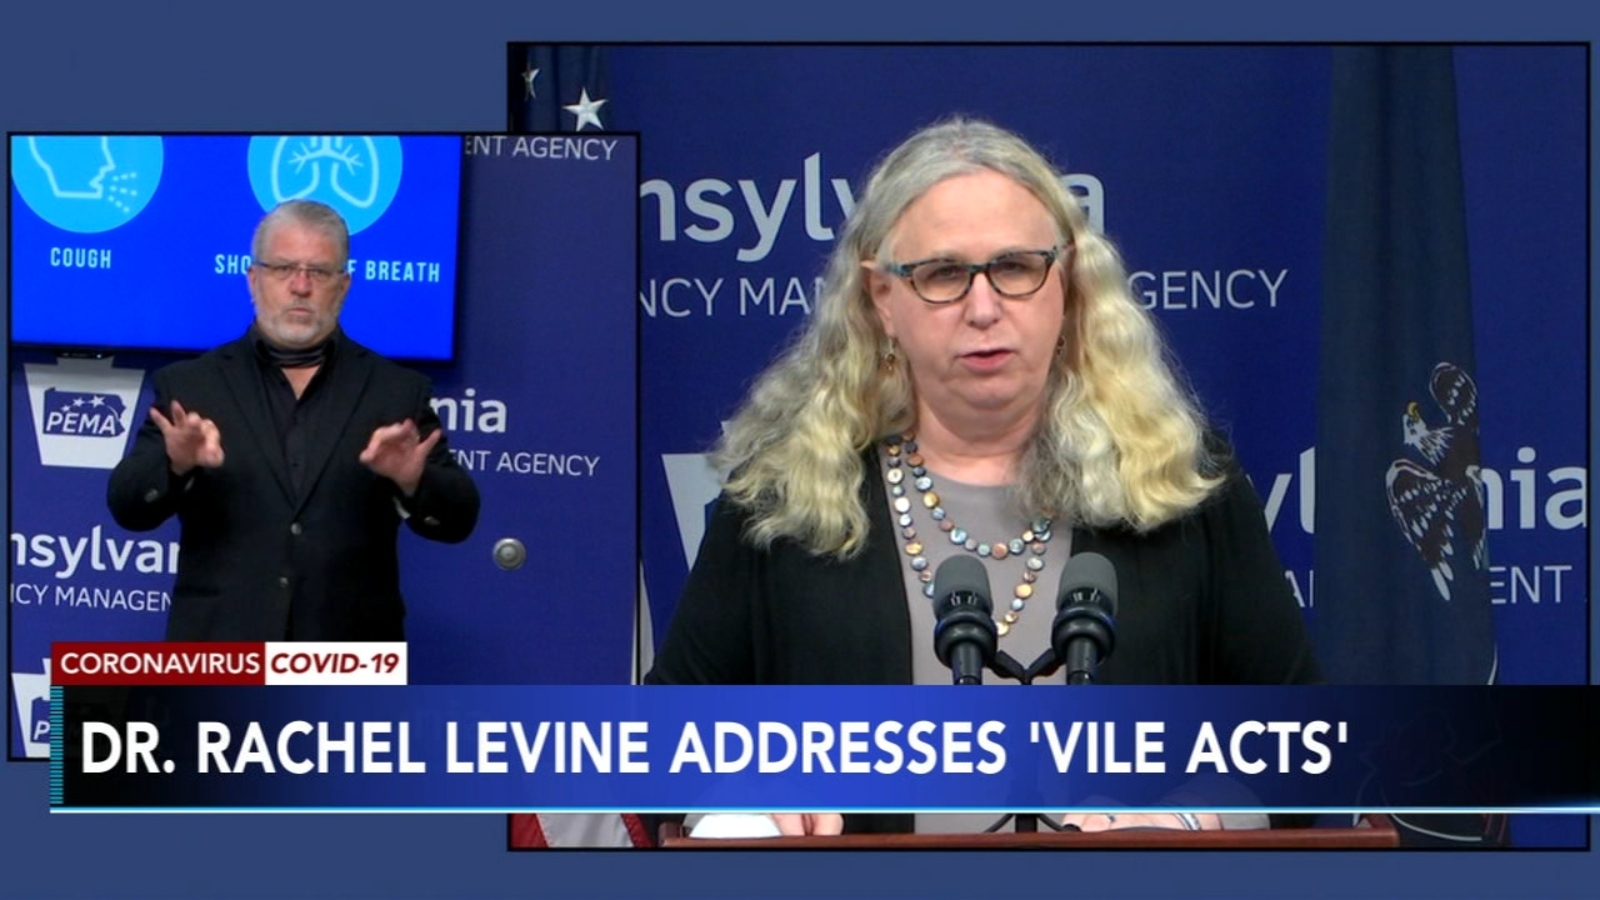 Dr. Rachel Levine responds to acts of LGBTQ harassment